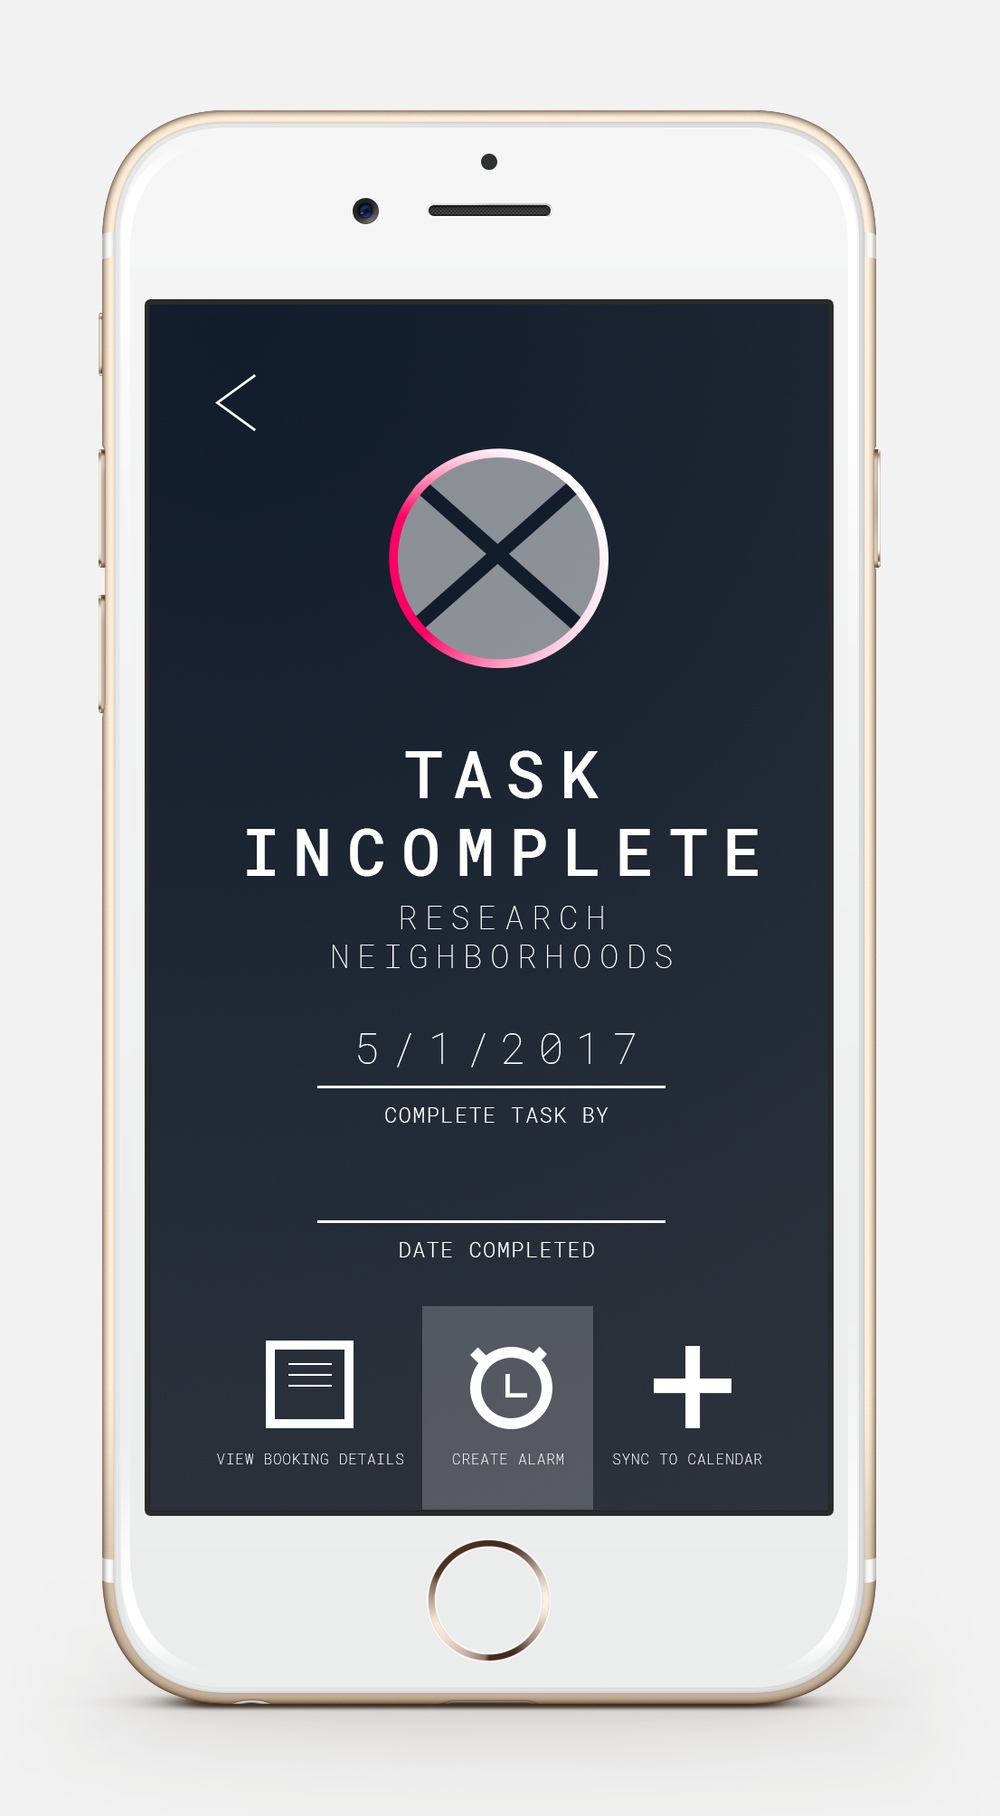 agile-task-incomplete-1.png